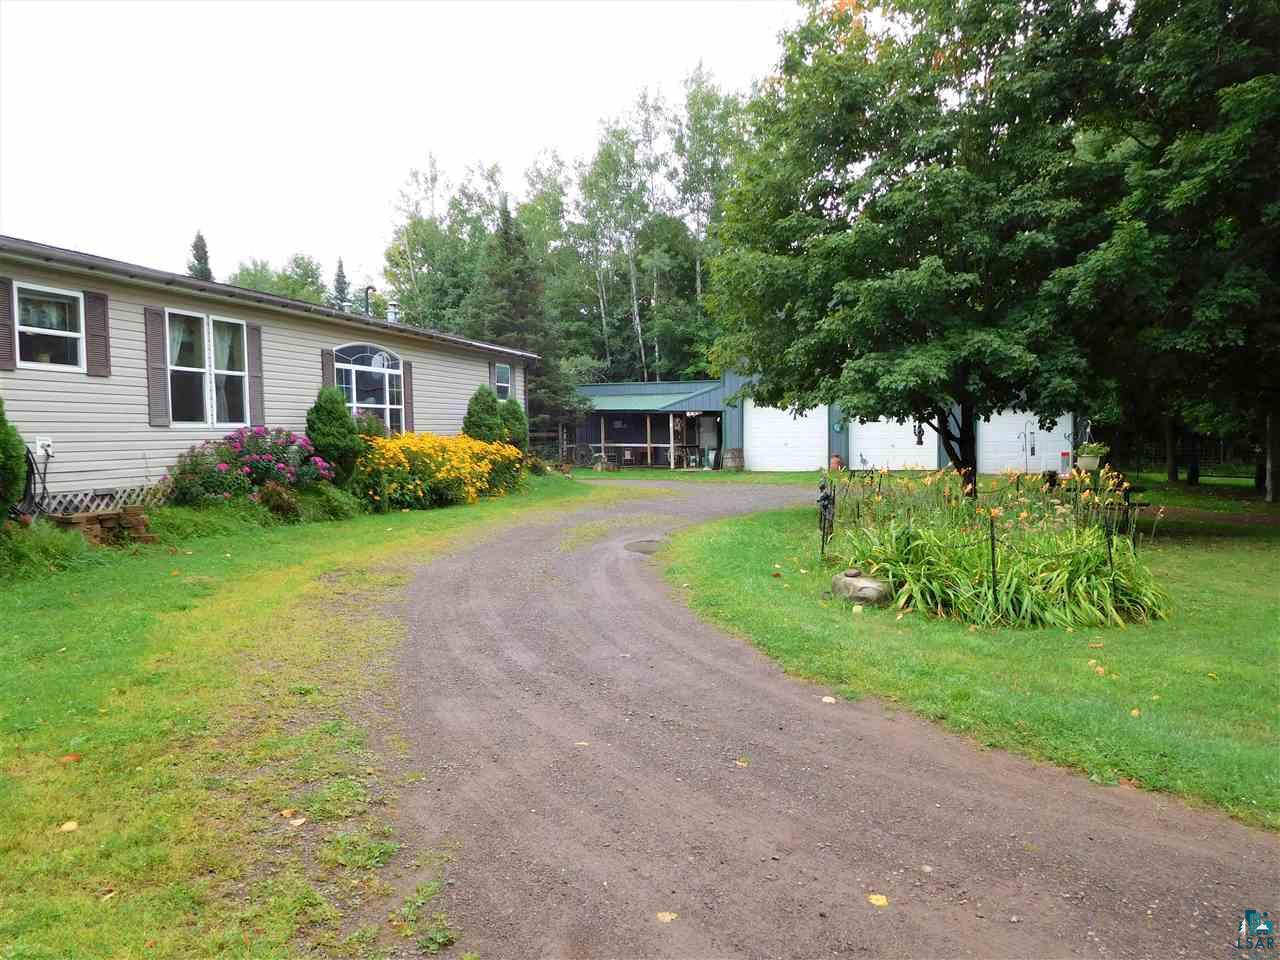 Down the road from Copper Falls, and an easy thirty-minute drive from Ashland (no city traffic or stop & go lights!), you'll love this property that's just under eight acres with a barn, chicken coop, numerous garden areas and trails throughout. The home has been added onto with a shared deck in the center which gives you many options & possibilities. Hobby Farm, Ranch, Air B&B, Offices, Studio Space, Mother-In-Law Suite? Plenty of space to spread out and enjoy two living rooms, kitchen with walk-in pantry, master bedroom with walk-in closet and attached bath with soaking tub, mudrooms, office, main floor laundry and much more. More acreage is available if desired.  The barn has three doors to house vehicles and equipment, a tack room, work room and upstairs storage/hay area.  Rock the evenings away on a rocking chair under the covered porch while the horses saunter by.  Numerous perennials and herbs are here to get your gardening started, come take a look!